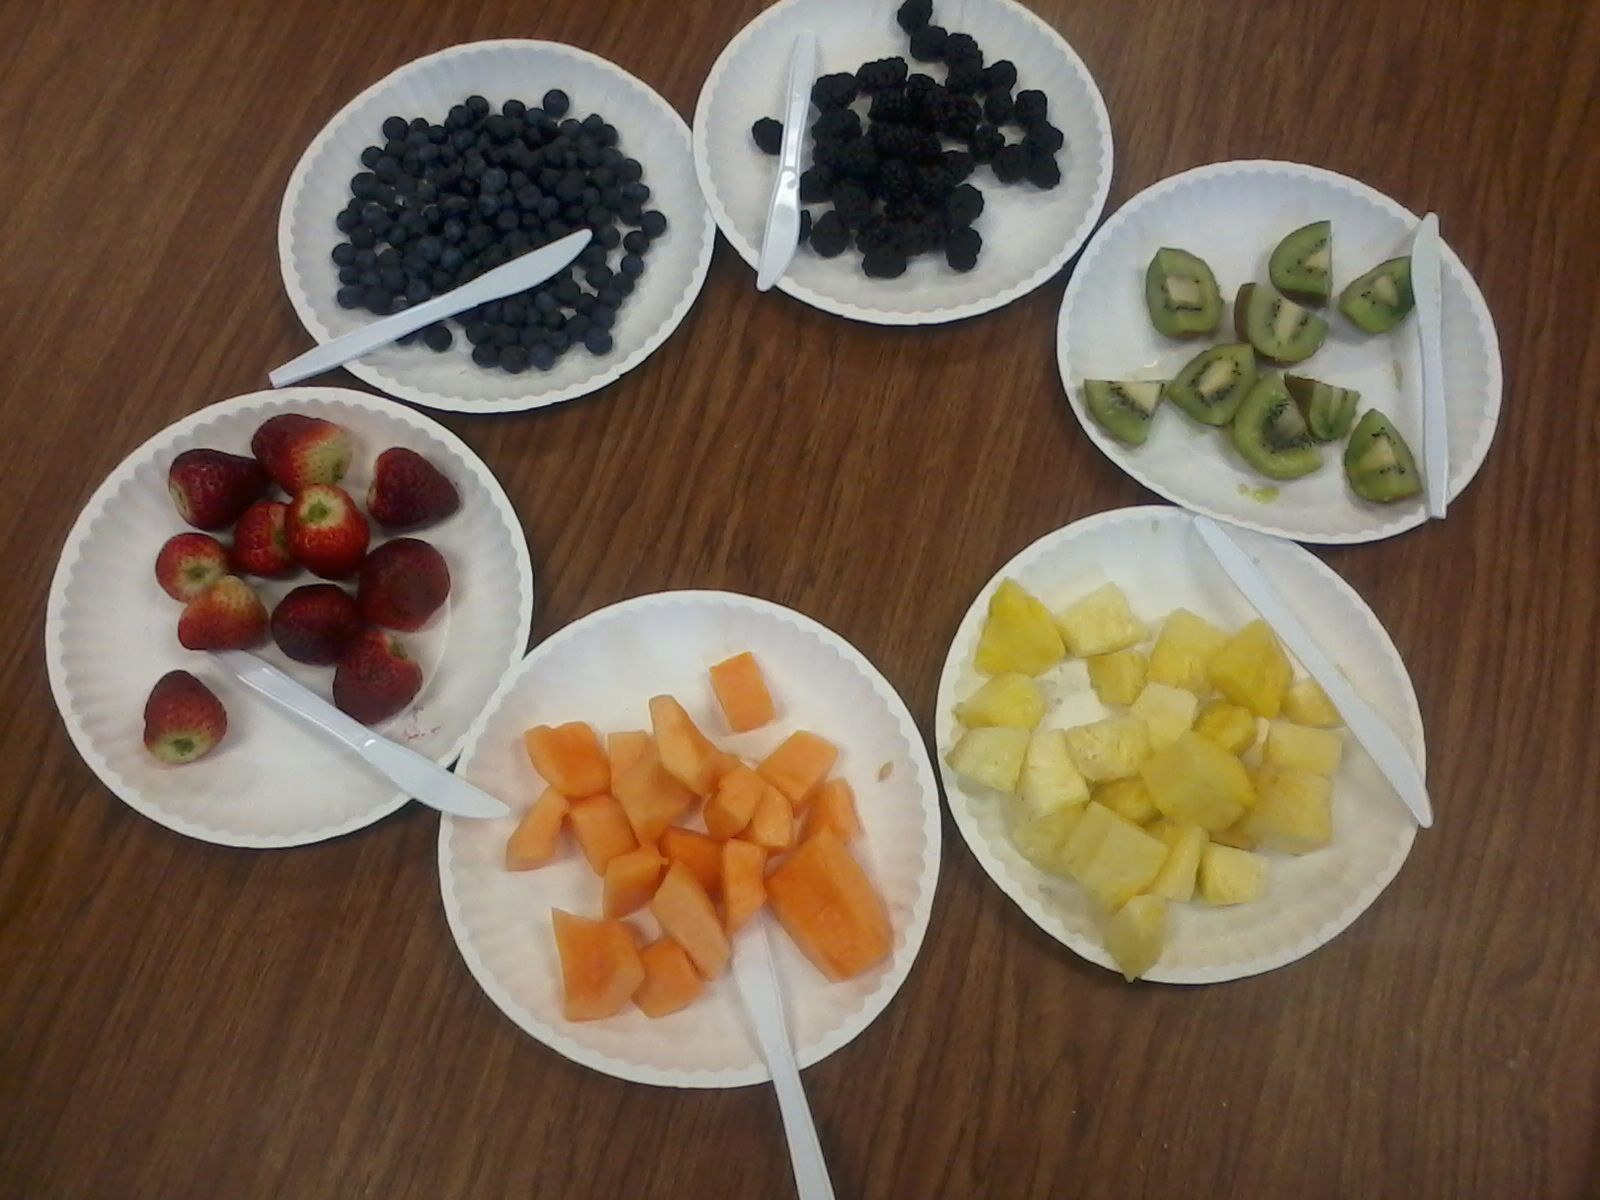 Rainbow fruit salad- kids cut and mix fruits of the colors of the rainbow